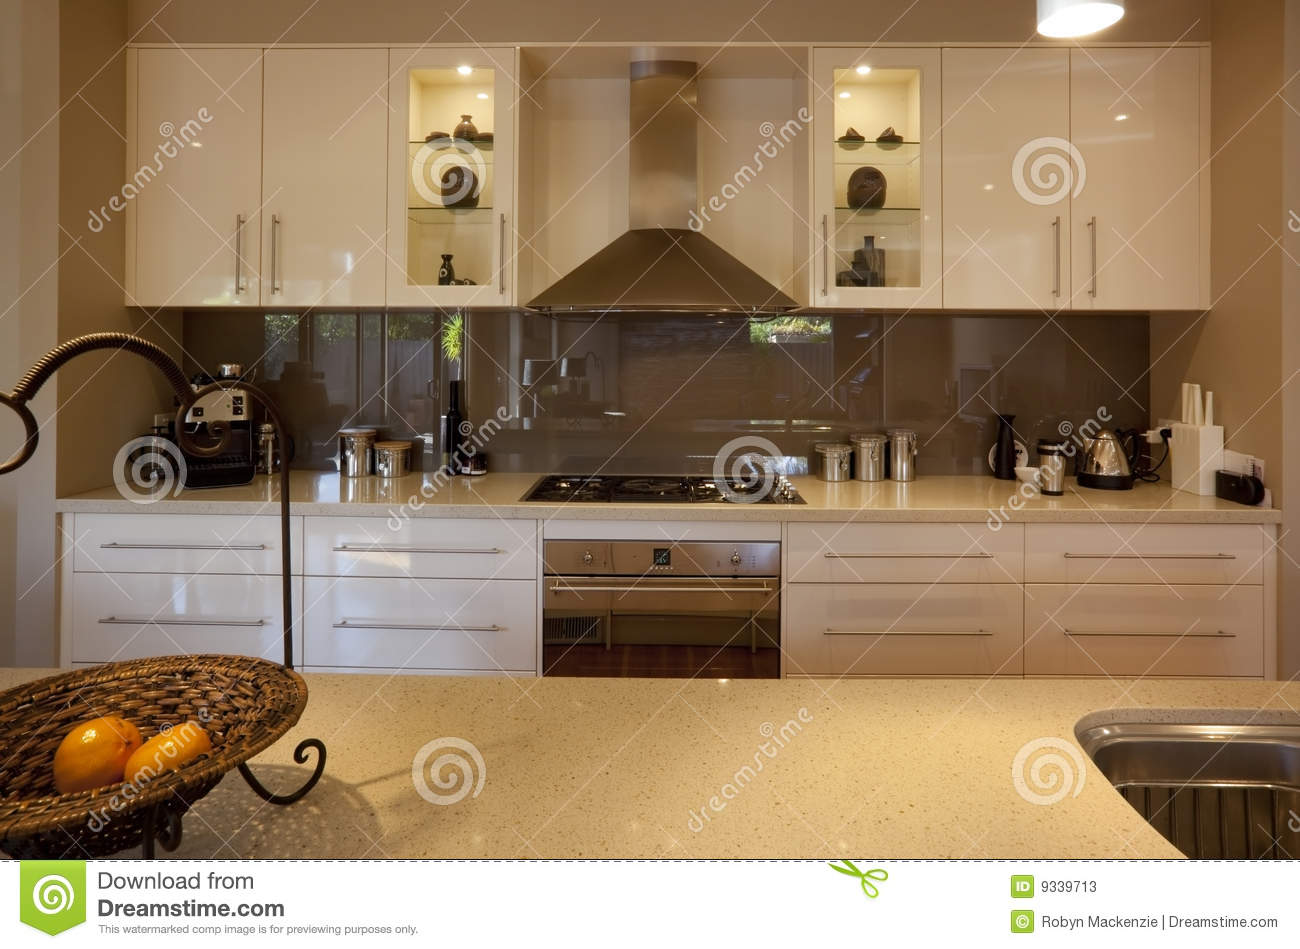 Glass Benchtops Modern Kitchen Stock Image Image Of Sink Domestic Extractor